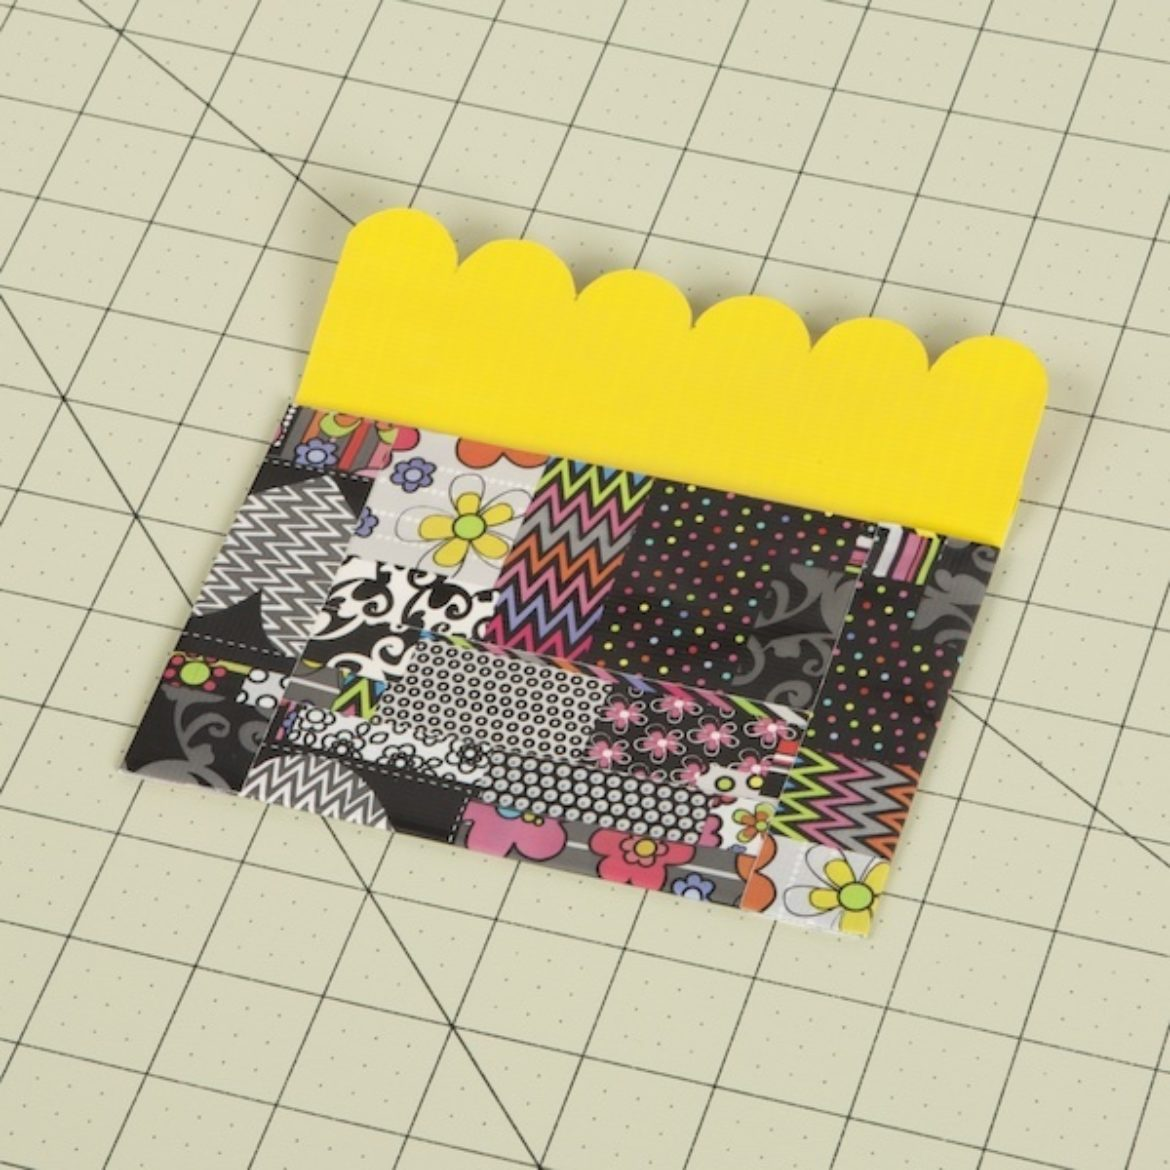 Tape placed over the open sides of the folded Duck Tape fabric to create the pocket